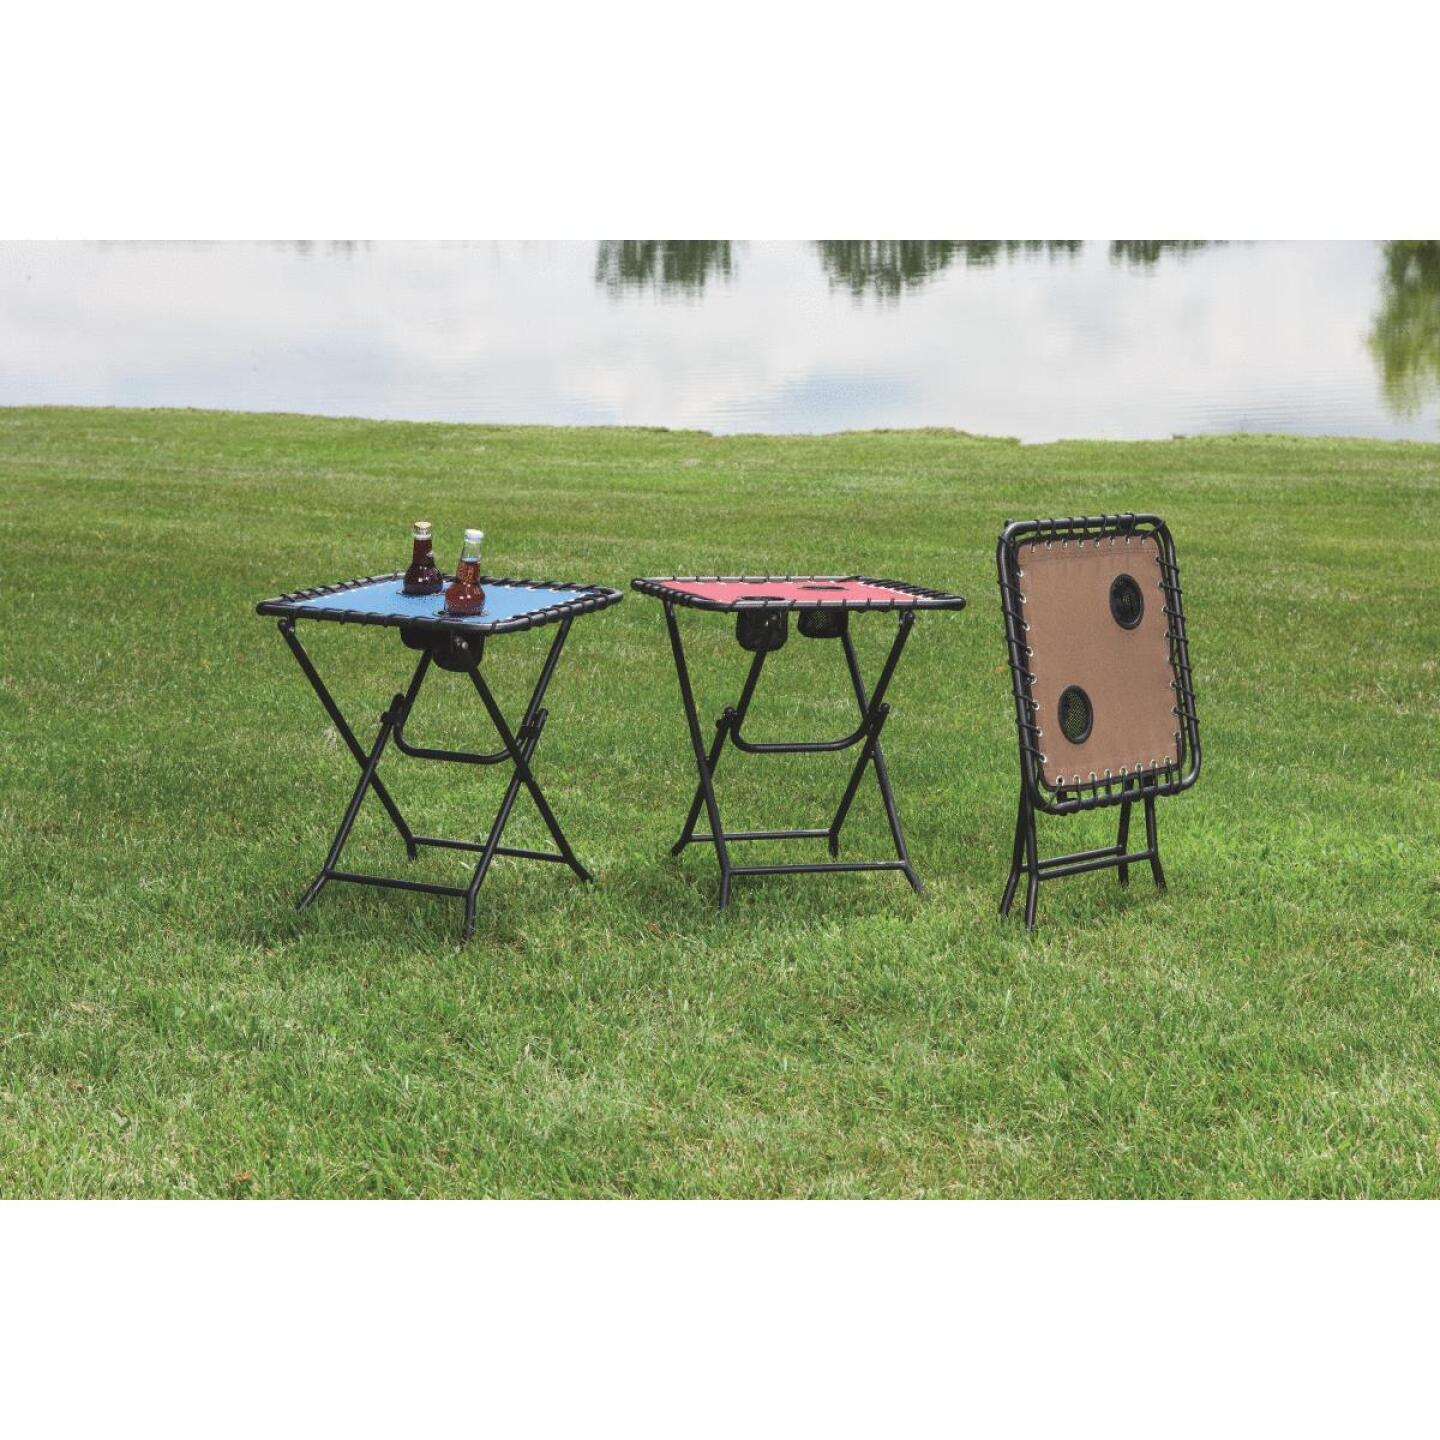 Outdoor Expressions Tan 18 In. Square Steel Folding Side Table Image 2